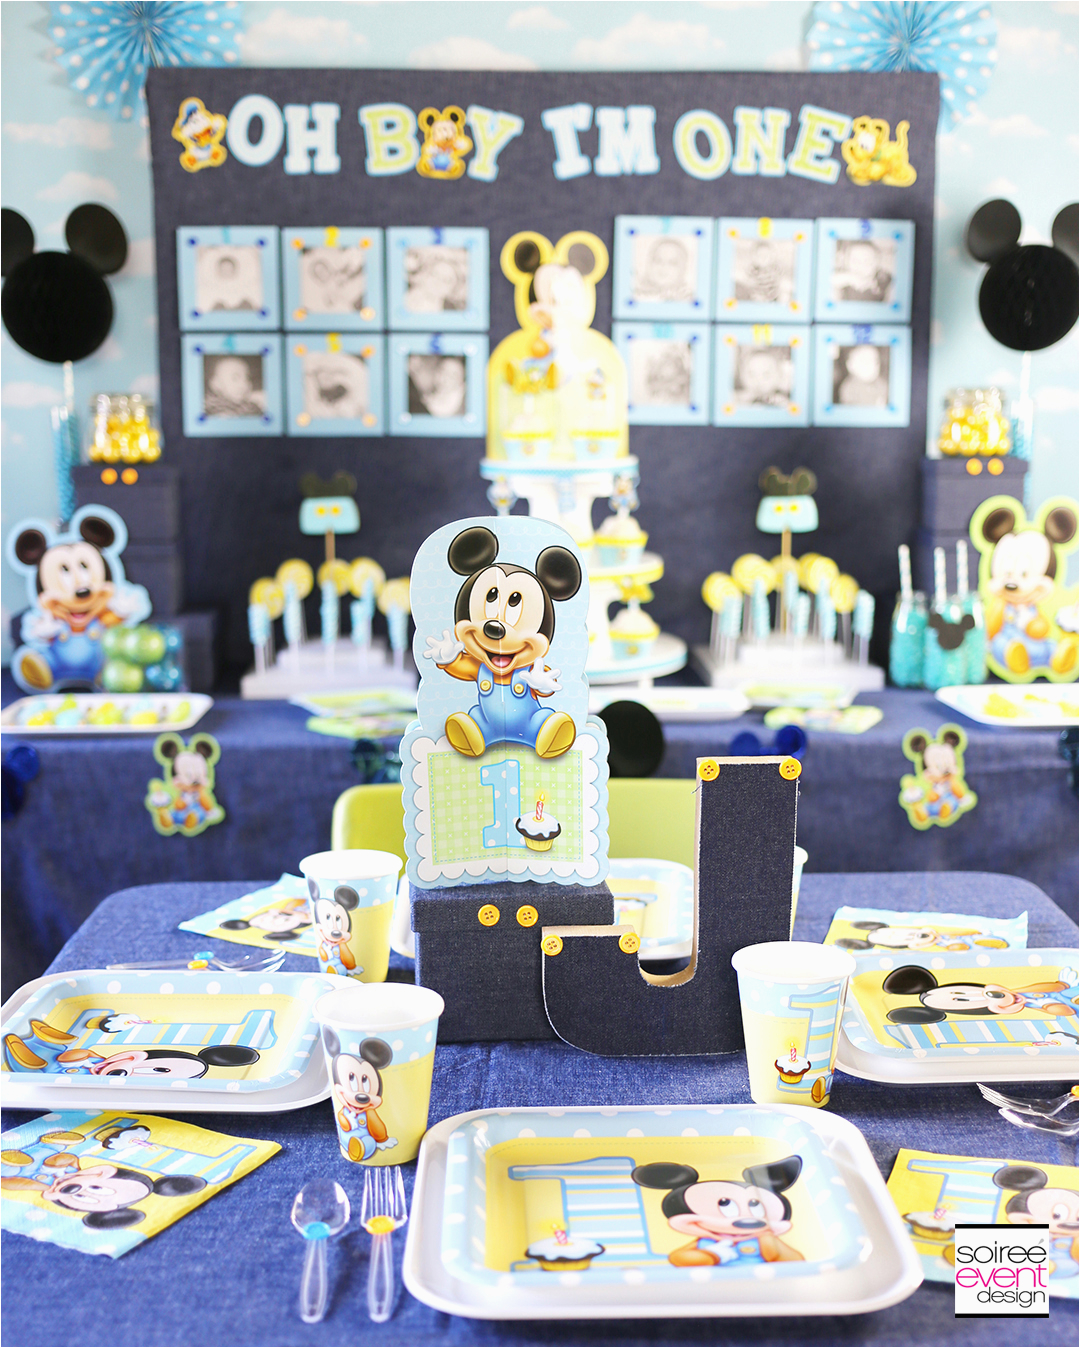 1 Year Old Birthday Party Decorations Nonsensical Game Ideas Themes